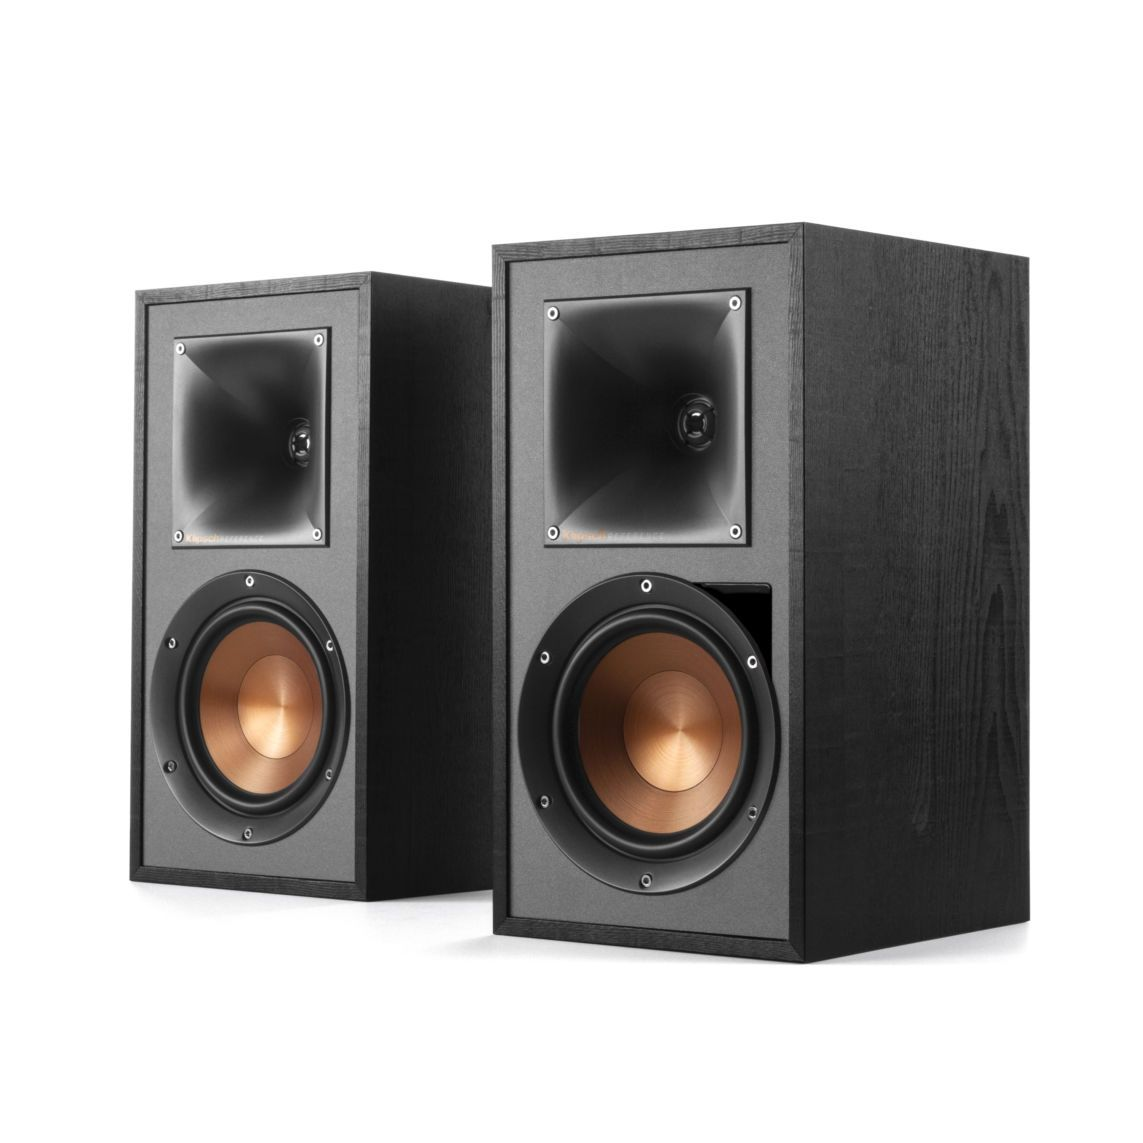 R-51PM Powered Bookshelf Speakers - Klipsch SG